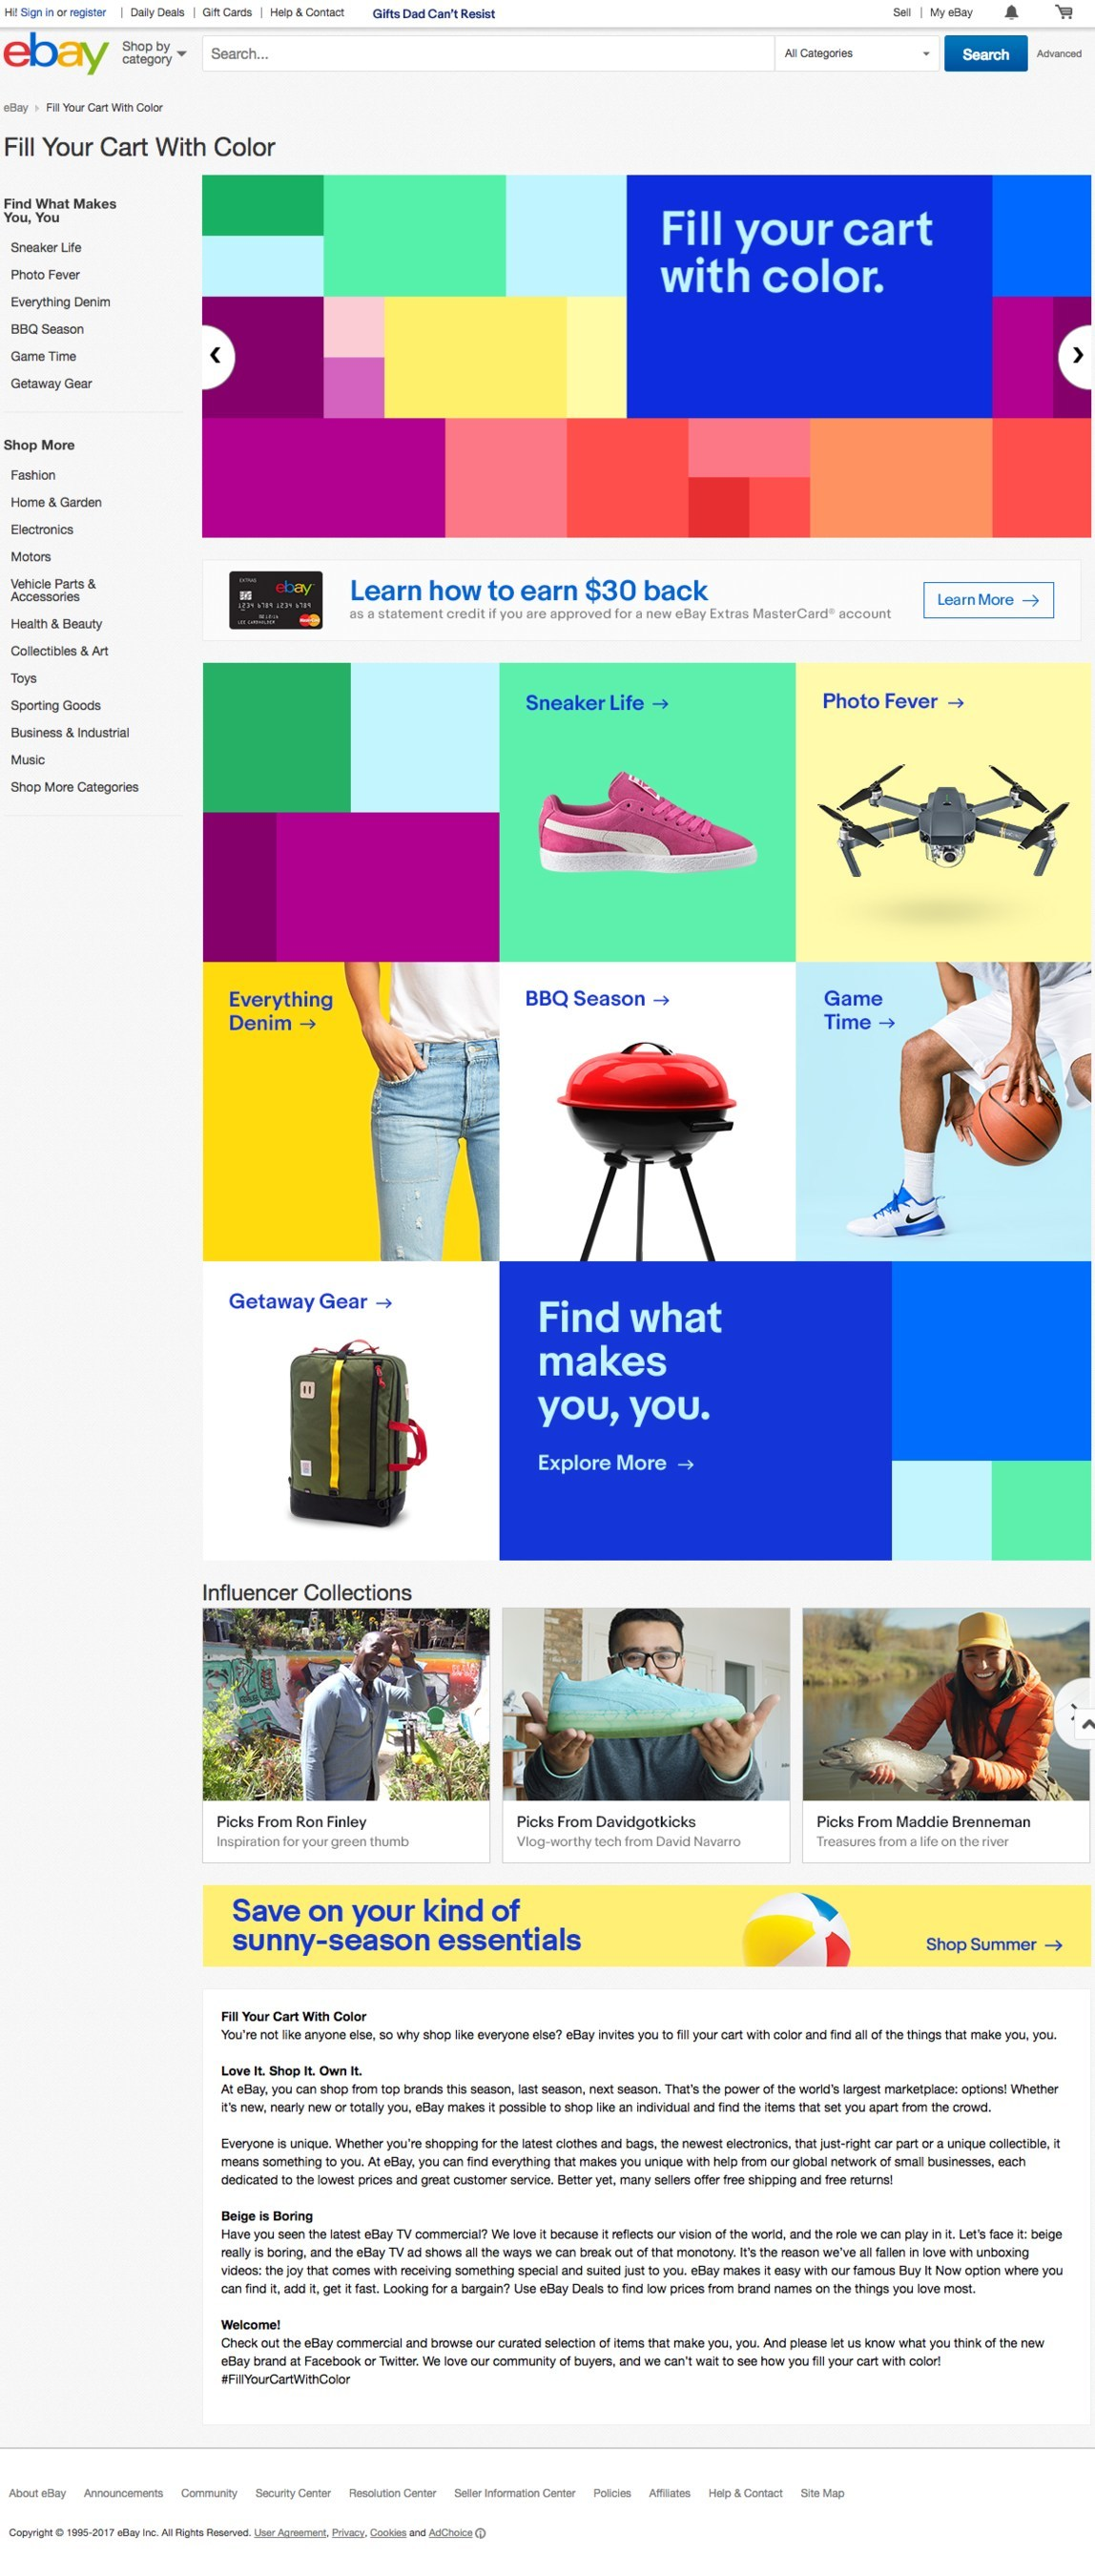 "eBay launches a new brand platform ""Fill Your Cart with Color"" http://www.ebay.com/fill-your-cart-with-color"